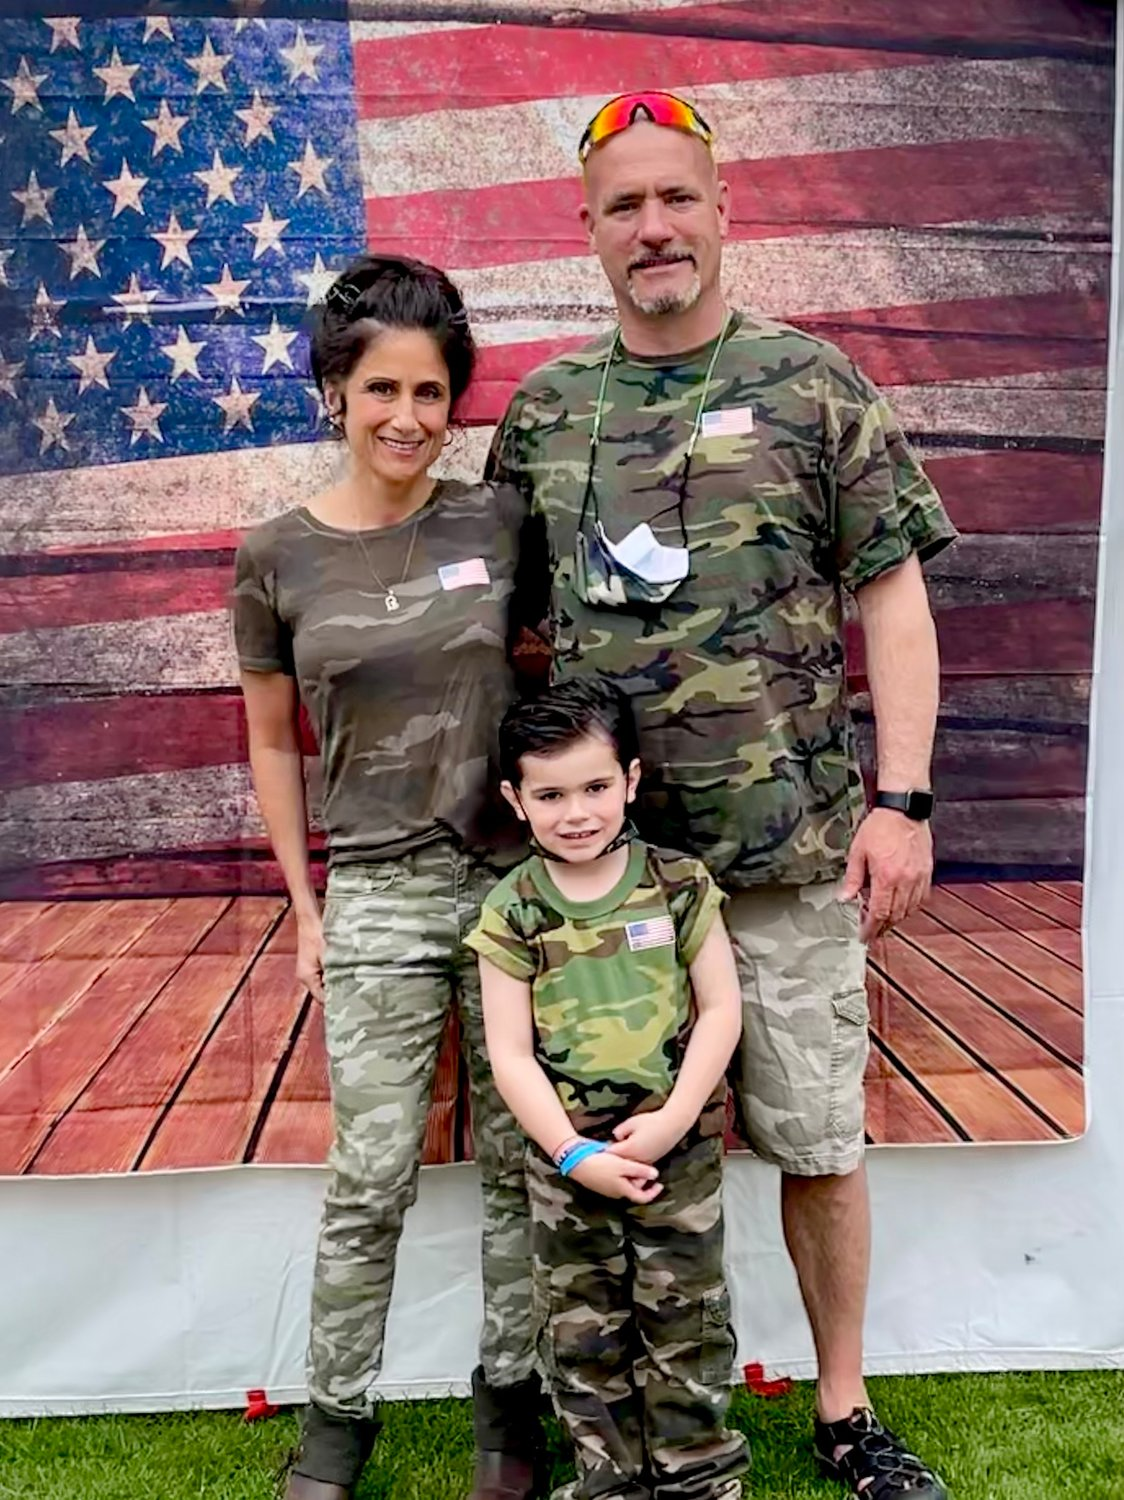 Seven U.S. Army soldiers from the Nassau Recruiting Company visited Jared Lanning Jr. to help him celebrate his 6th birthday. Jared enjoyed the day, and dressed for the occasion with his parents, Kimberlee and John Lanning.